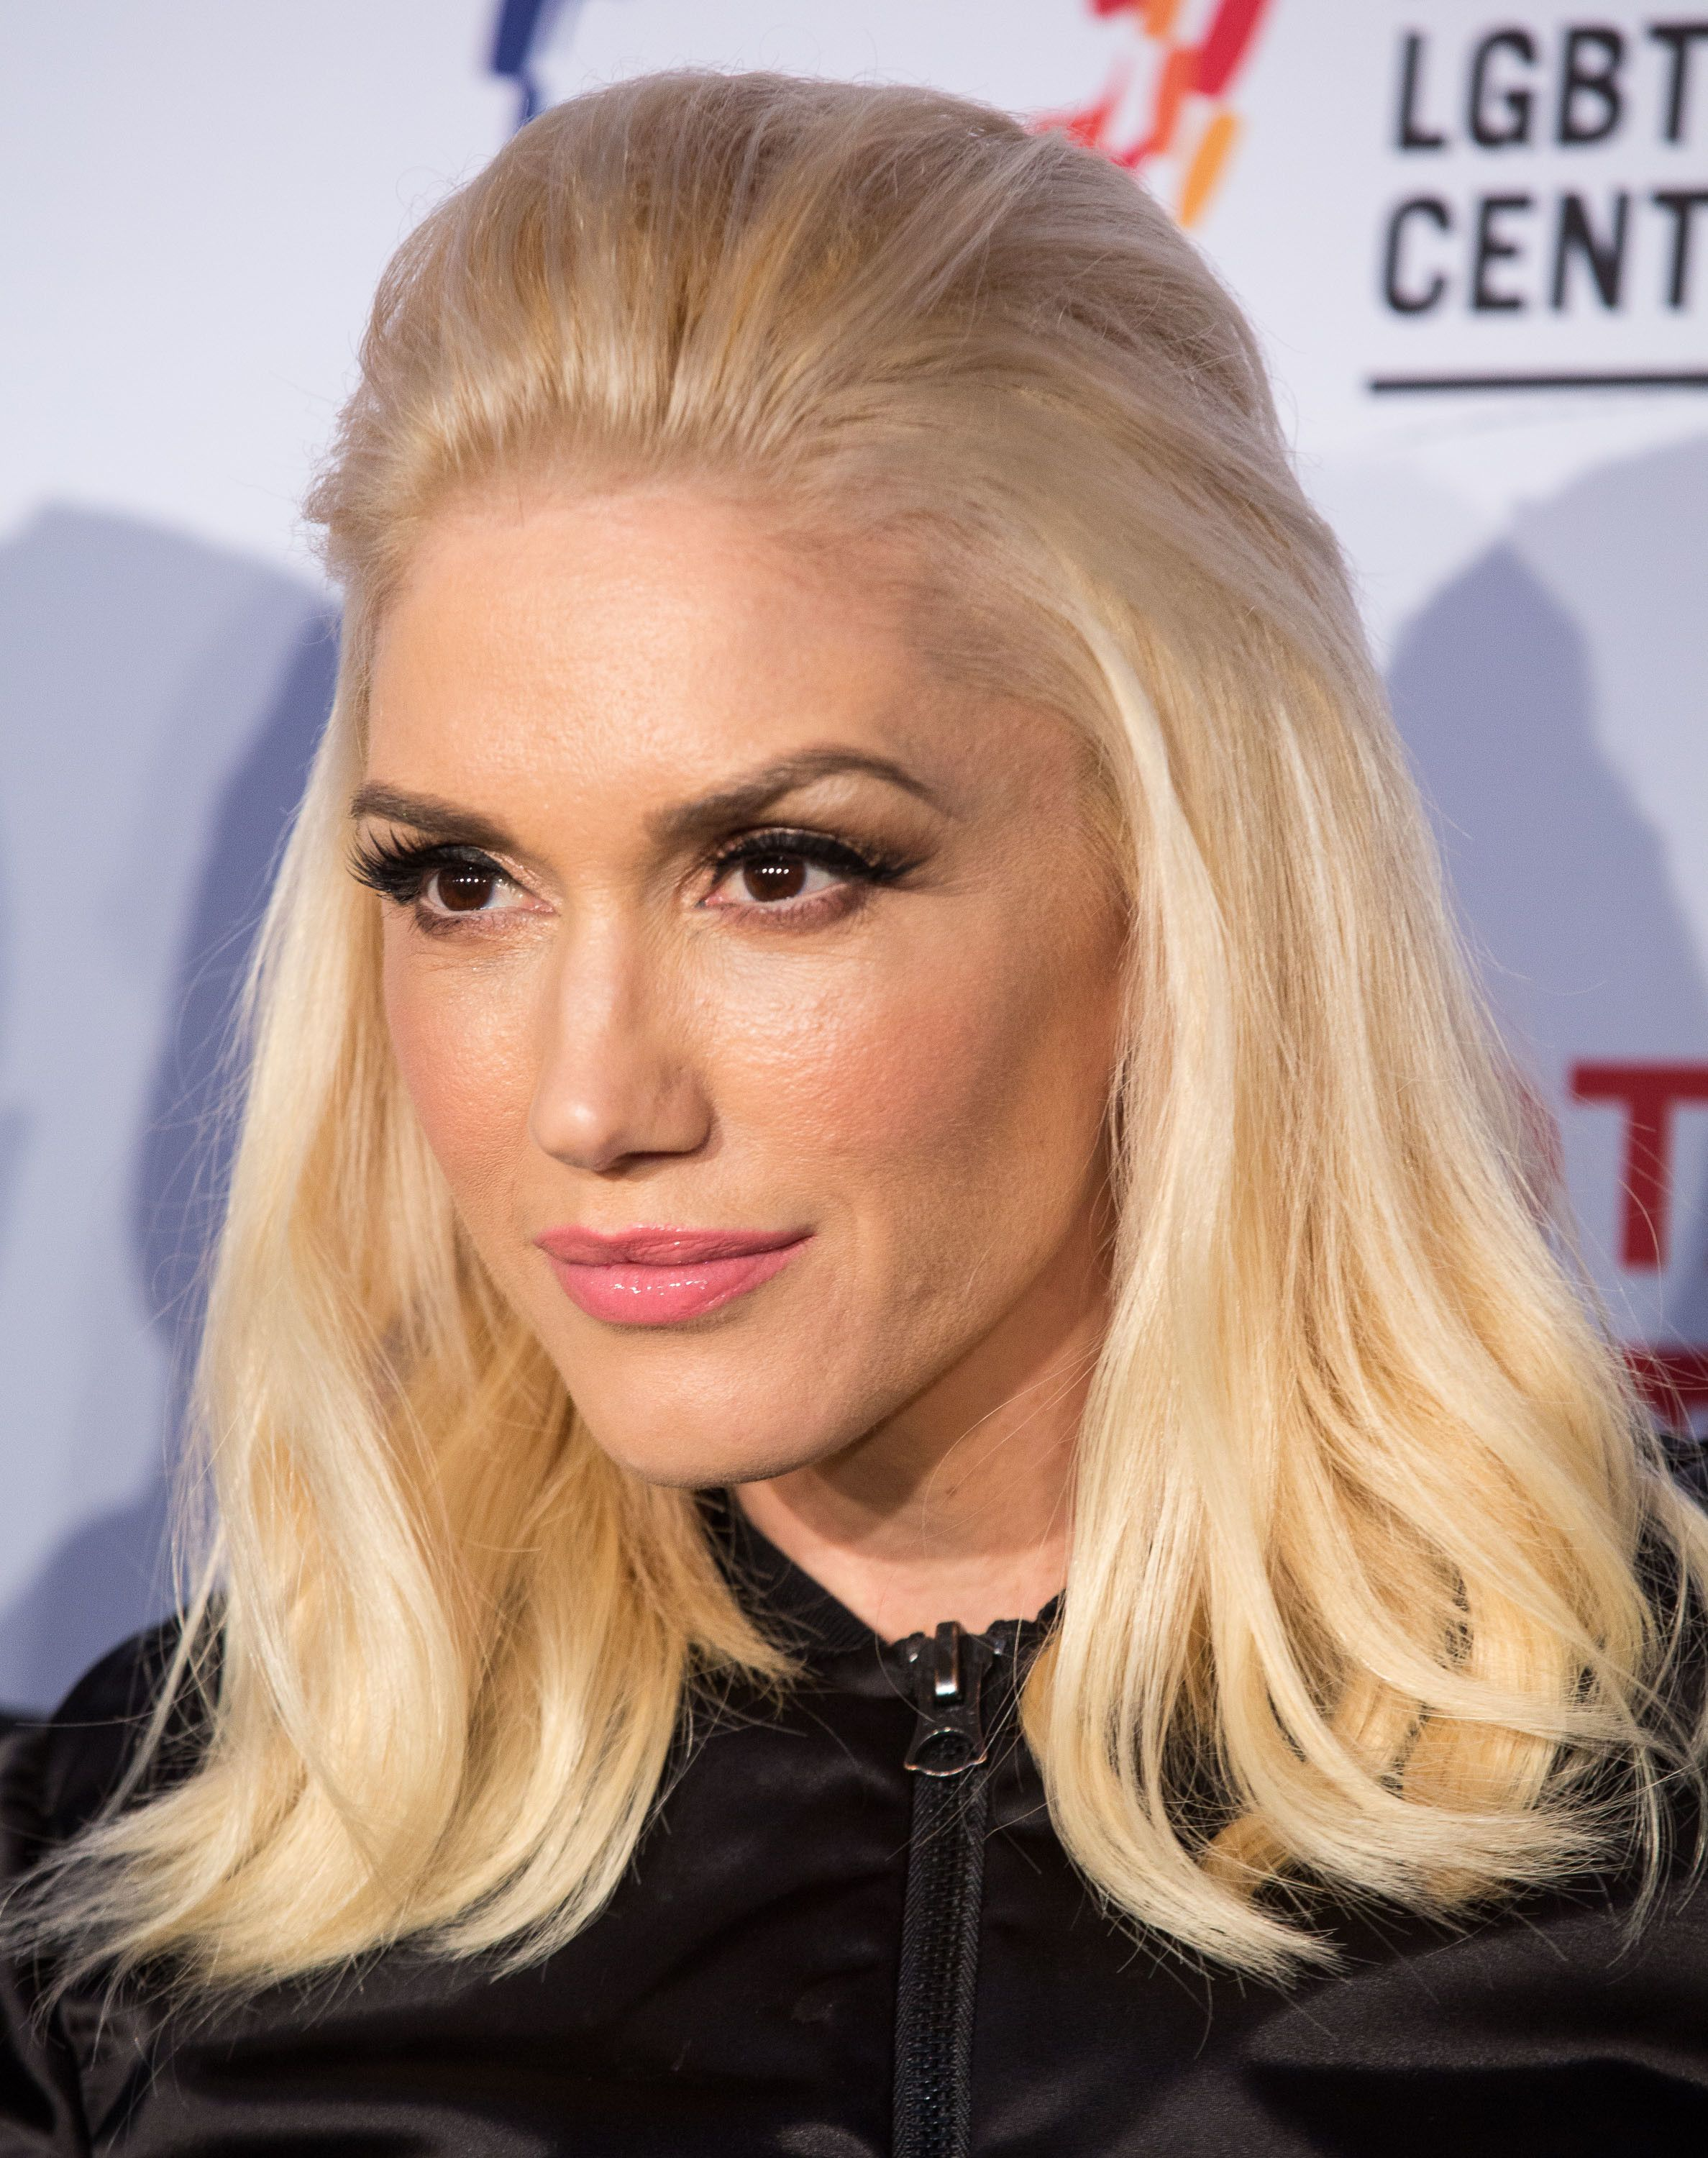 64 short hairstyles that will make you want to chop it all off 64 short hairstyles that will make you want to chop it all off gwen stefani pmusecretfo Choice Image